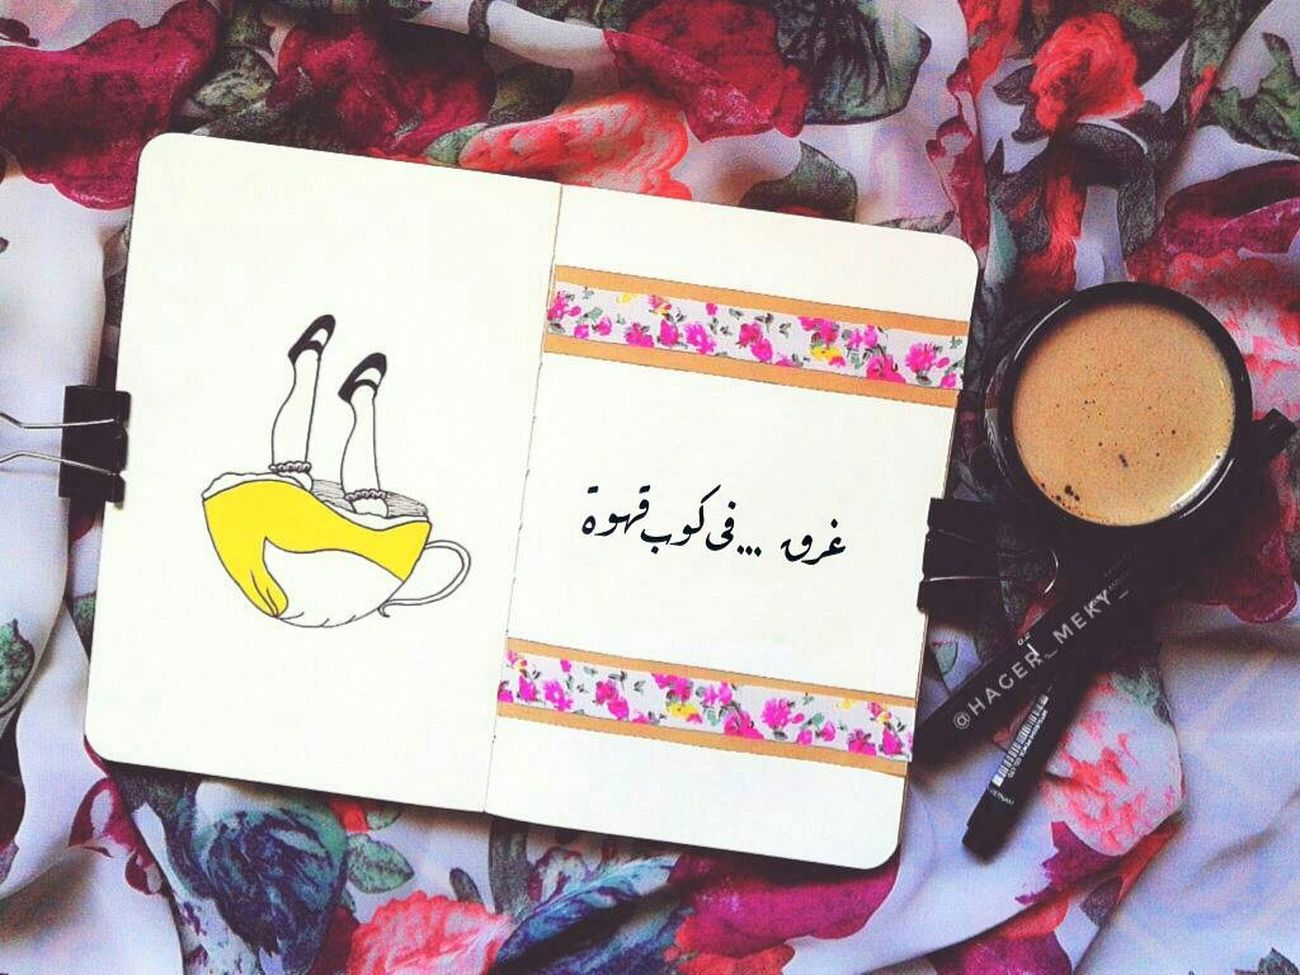 No People Diary Indoors  Day Art, Drawing, Creativity Art Gallery Artist Art Illustrator Artphotography Inkdrawing Draw Illustration Ink Drawing Sketchbook FreeTime ArtWork Cinderella Coffee Coffee Break Mobilephotography Egyptian Art Font خط_الرقعه Visual Feast